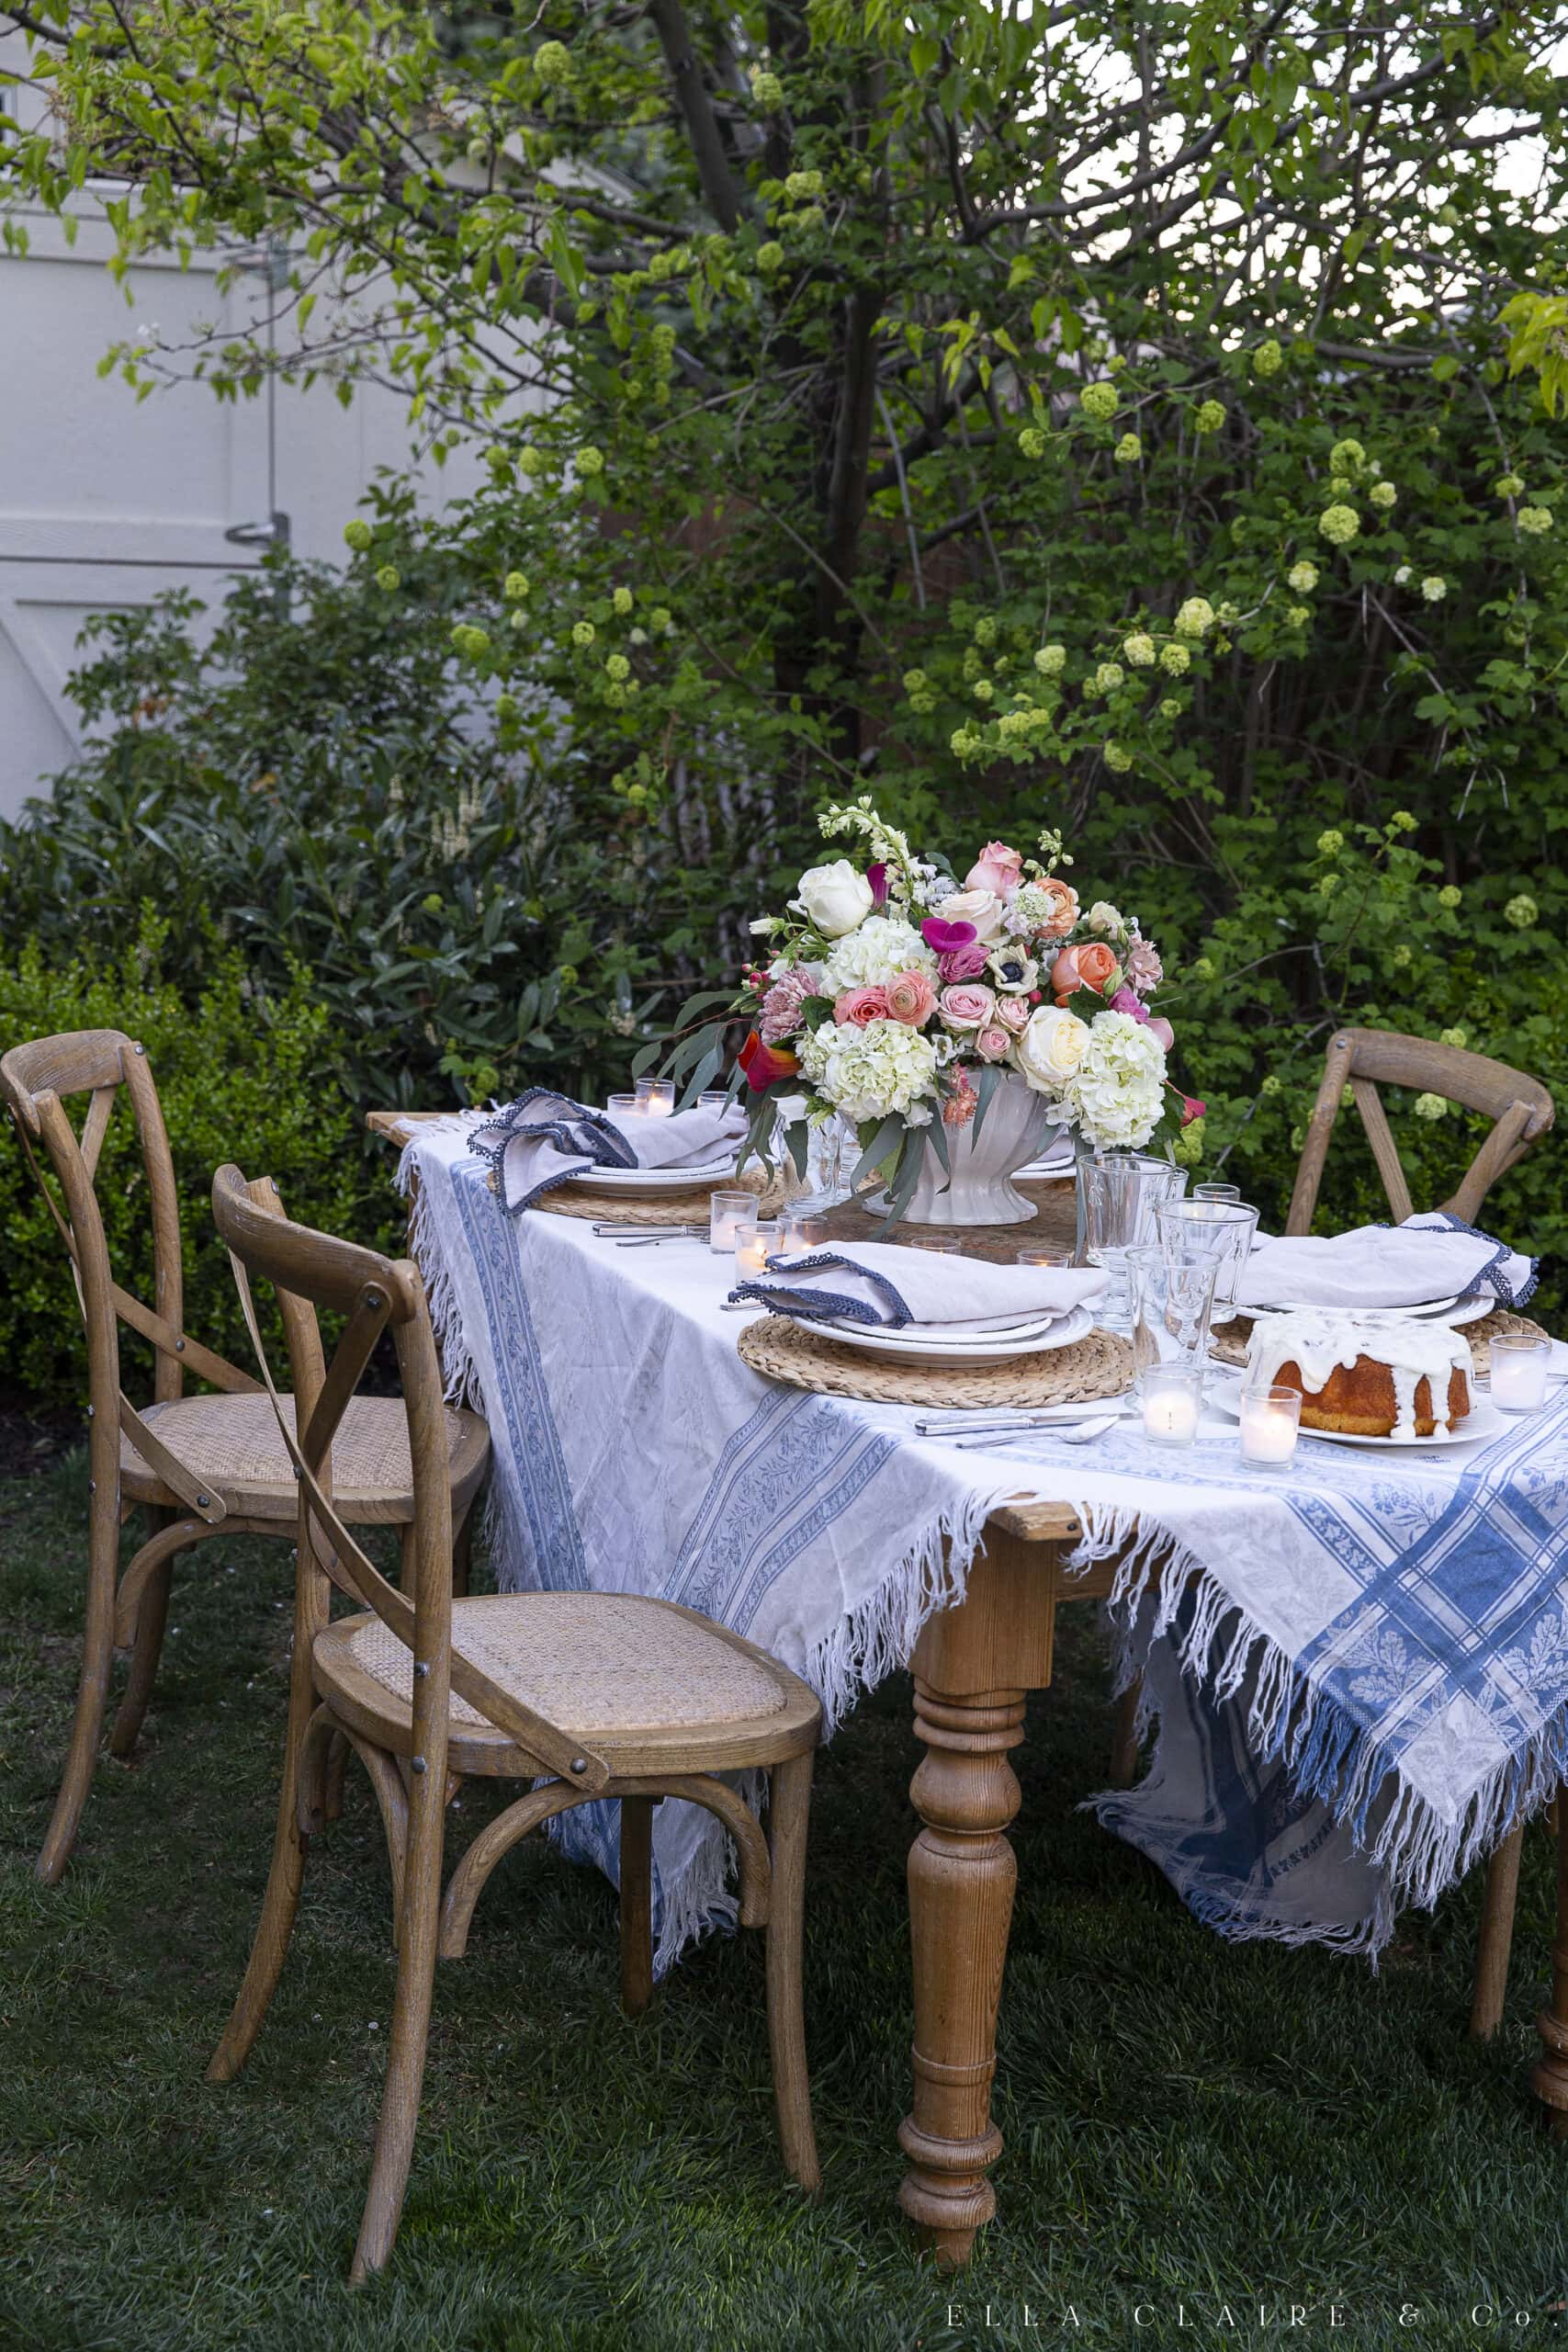 table and chair outdoors decorated for spring dinner